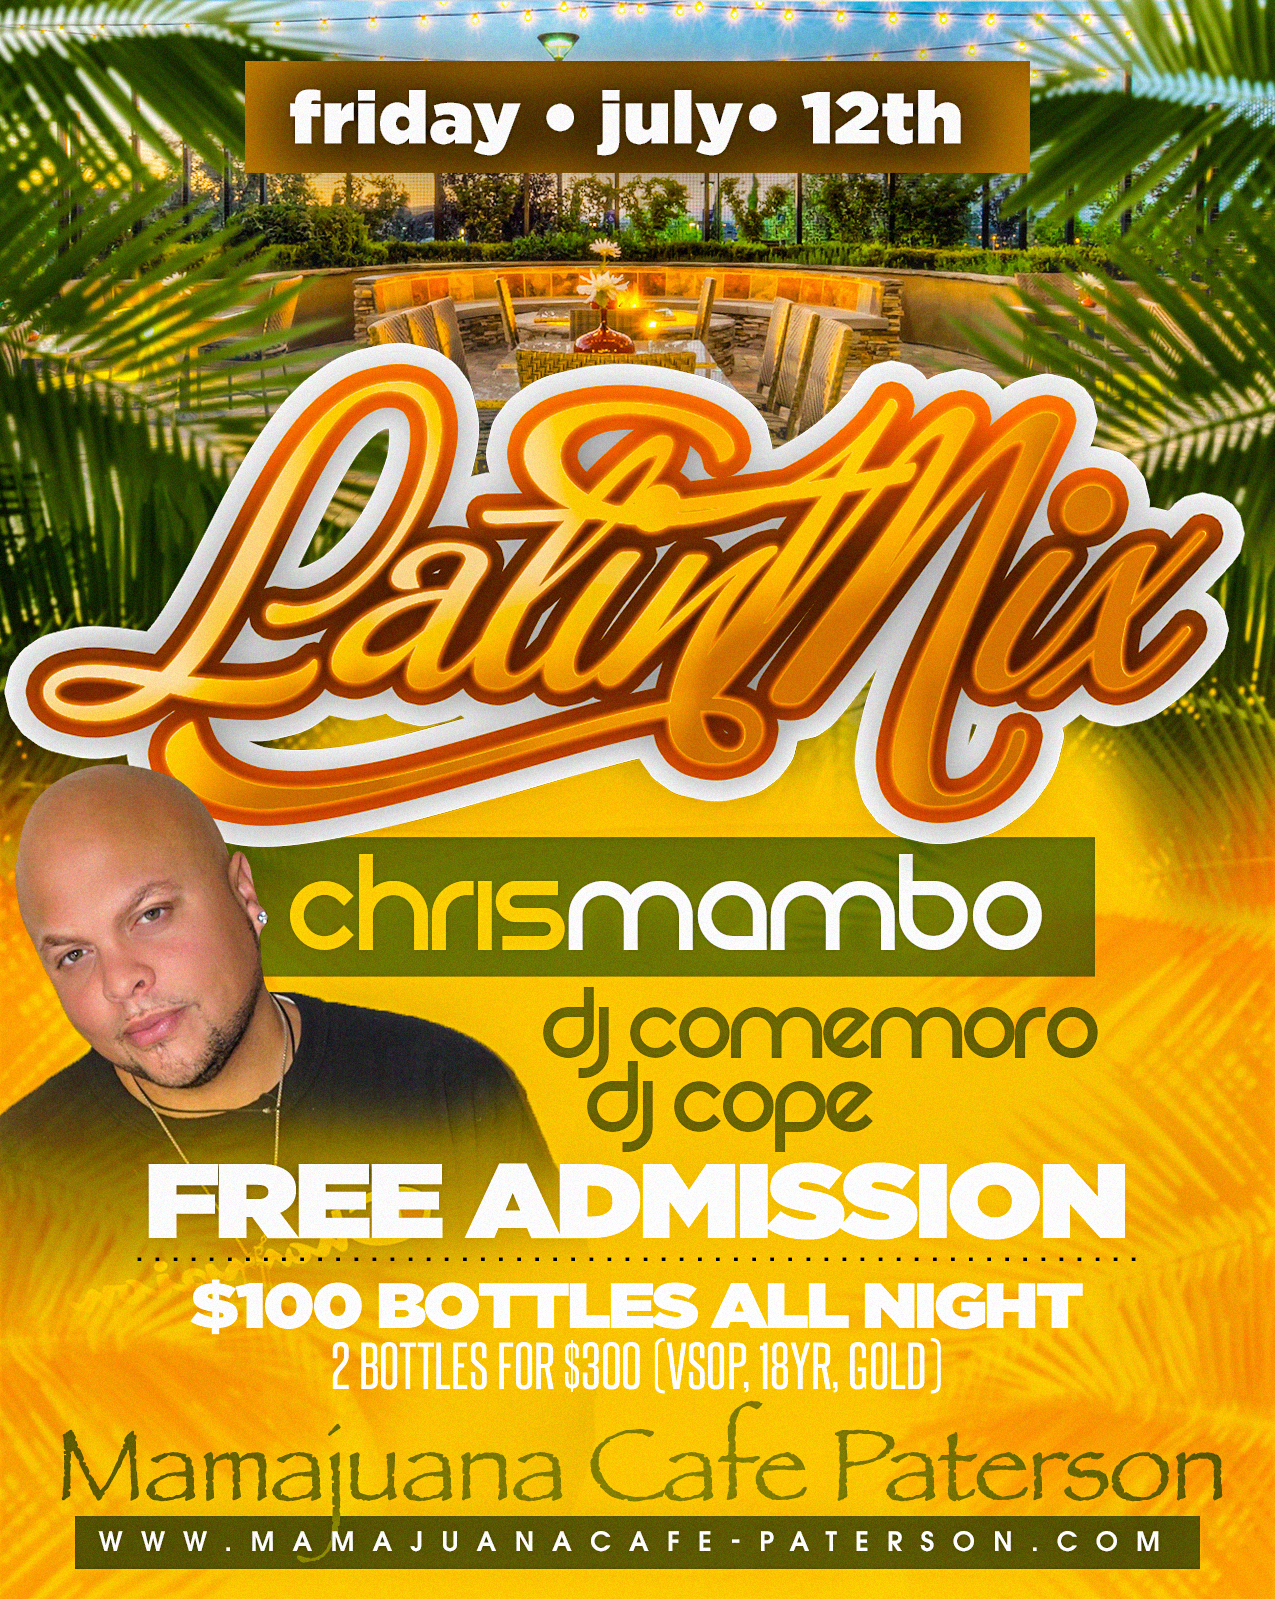 Latin Mixx Fridays at Mamajuana Cafe in Paterson $100 Bottle specials all night hookah available music powered by Dj Cope, Dj Comemoro & X96.3's own Dj Chris Mambo.  Contact 201.481.7906 for more details or reservations.